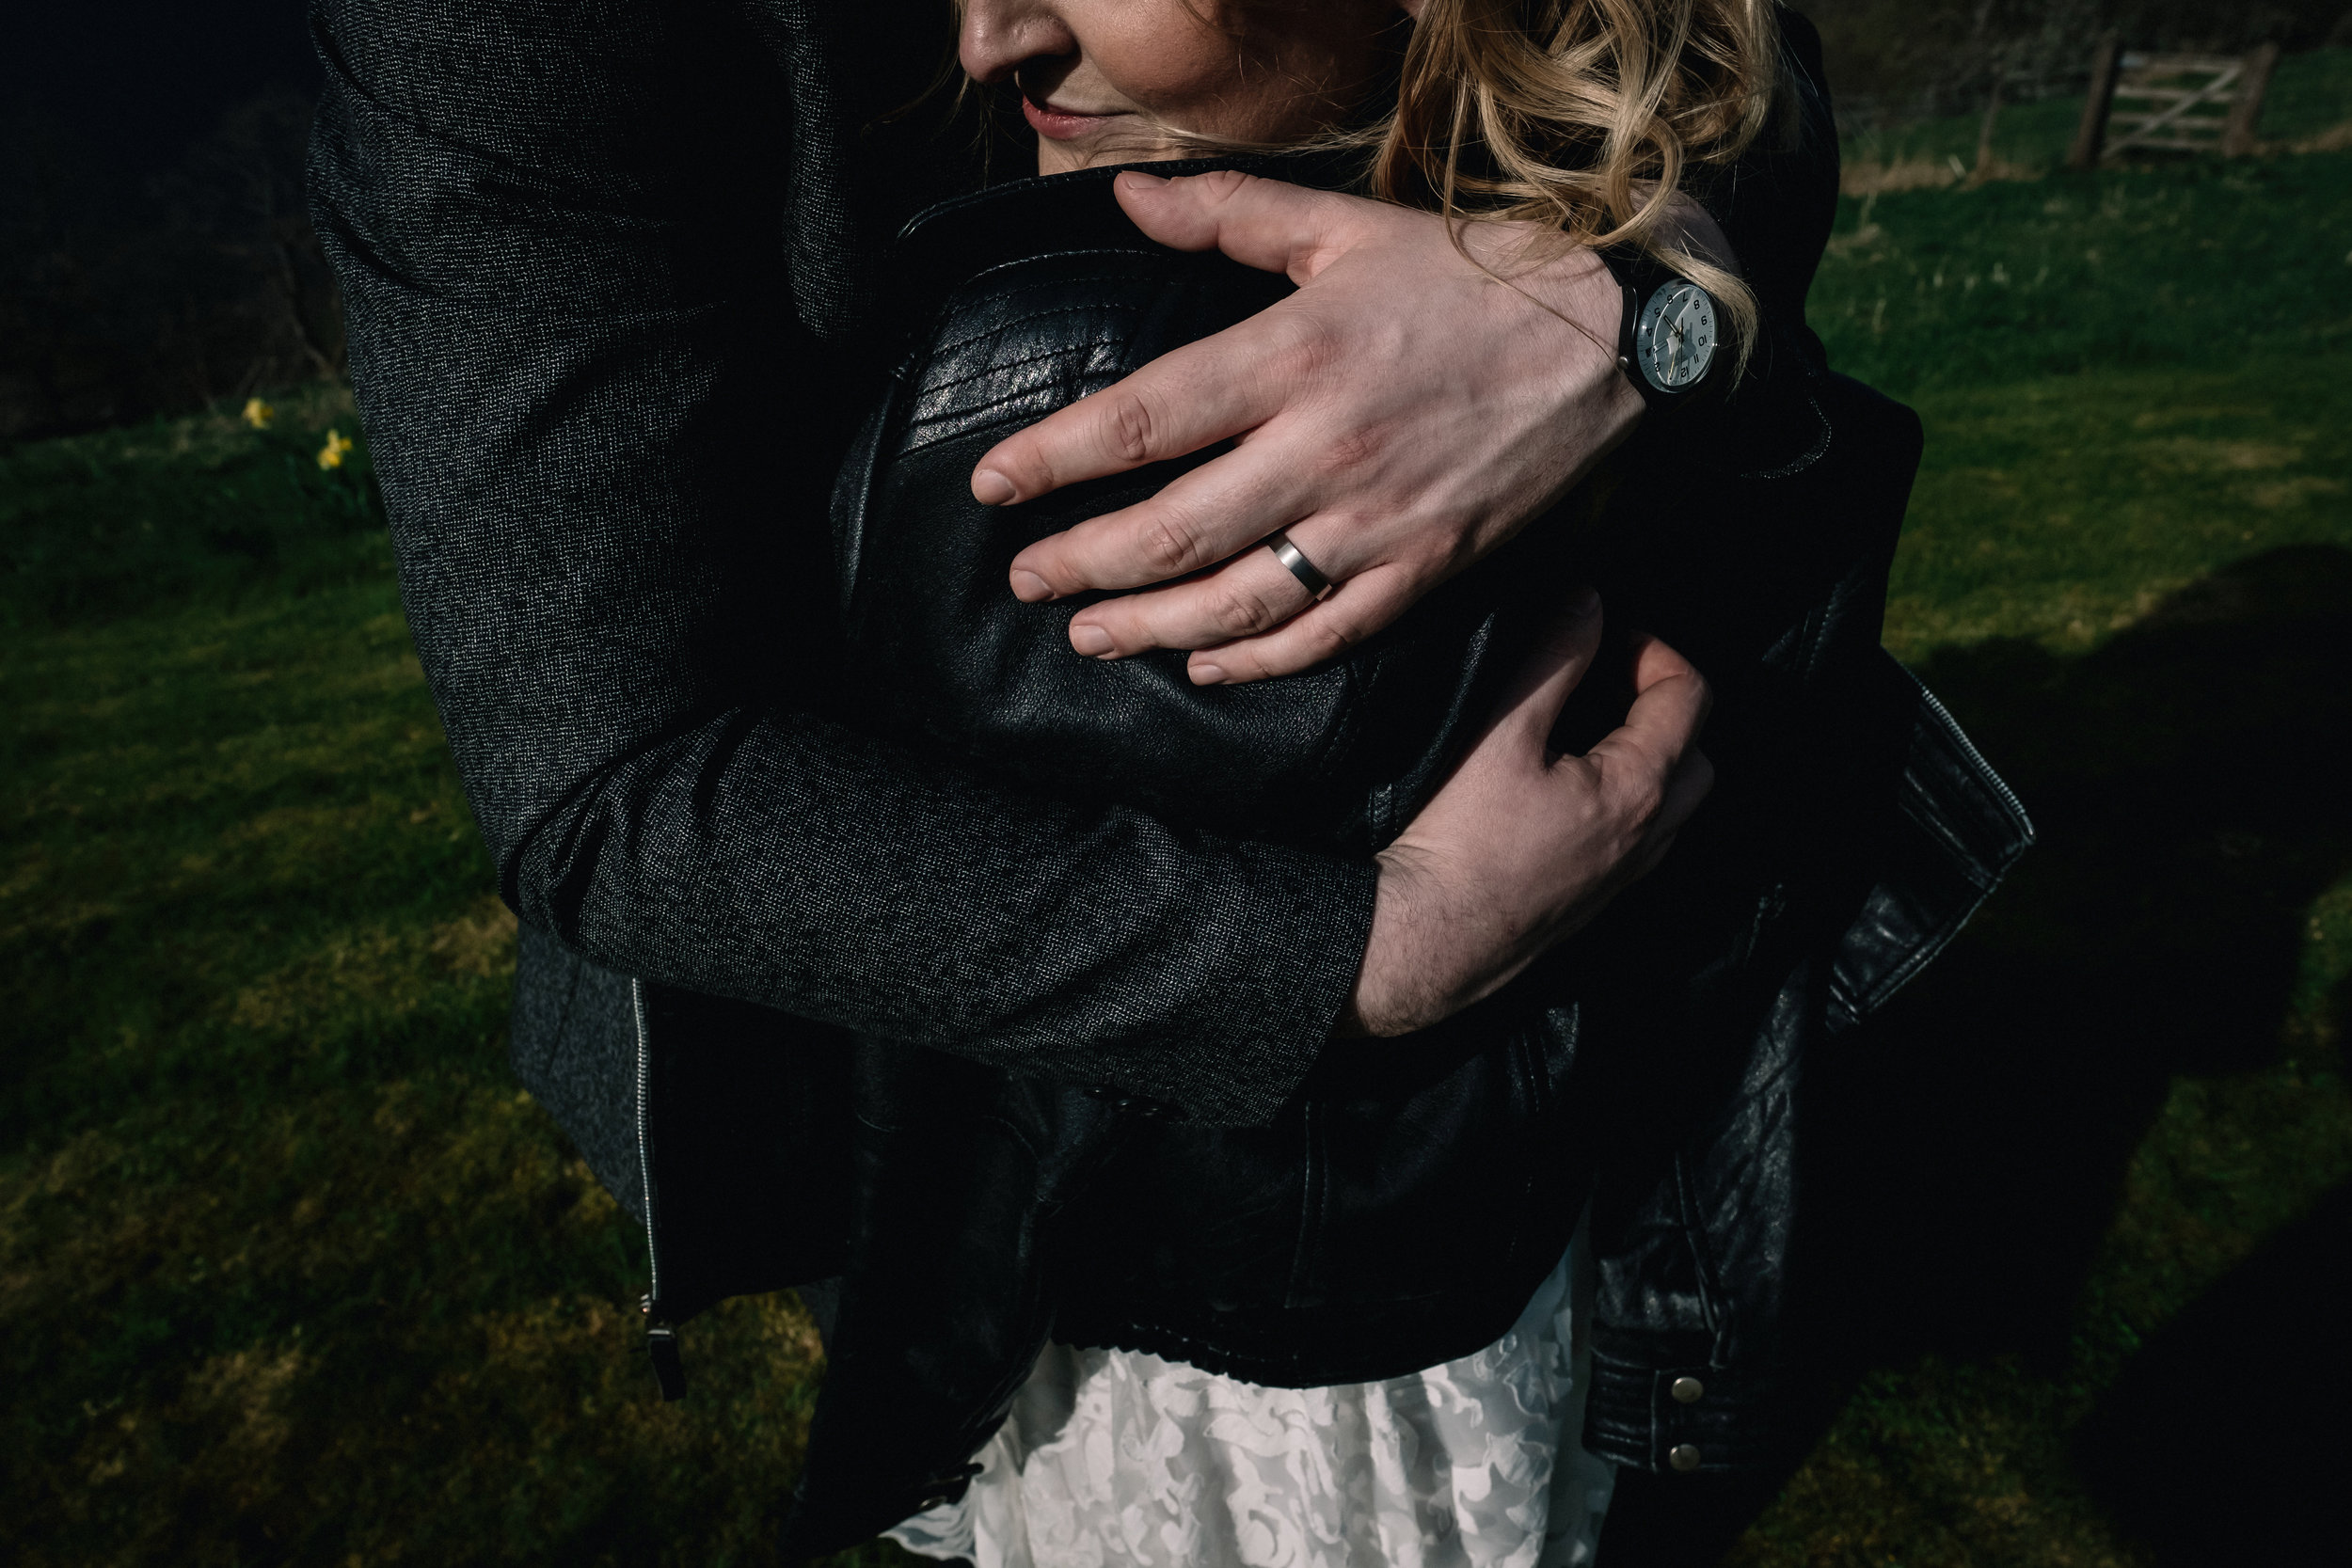 Couple in a close embrace